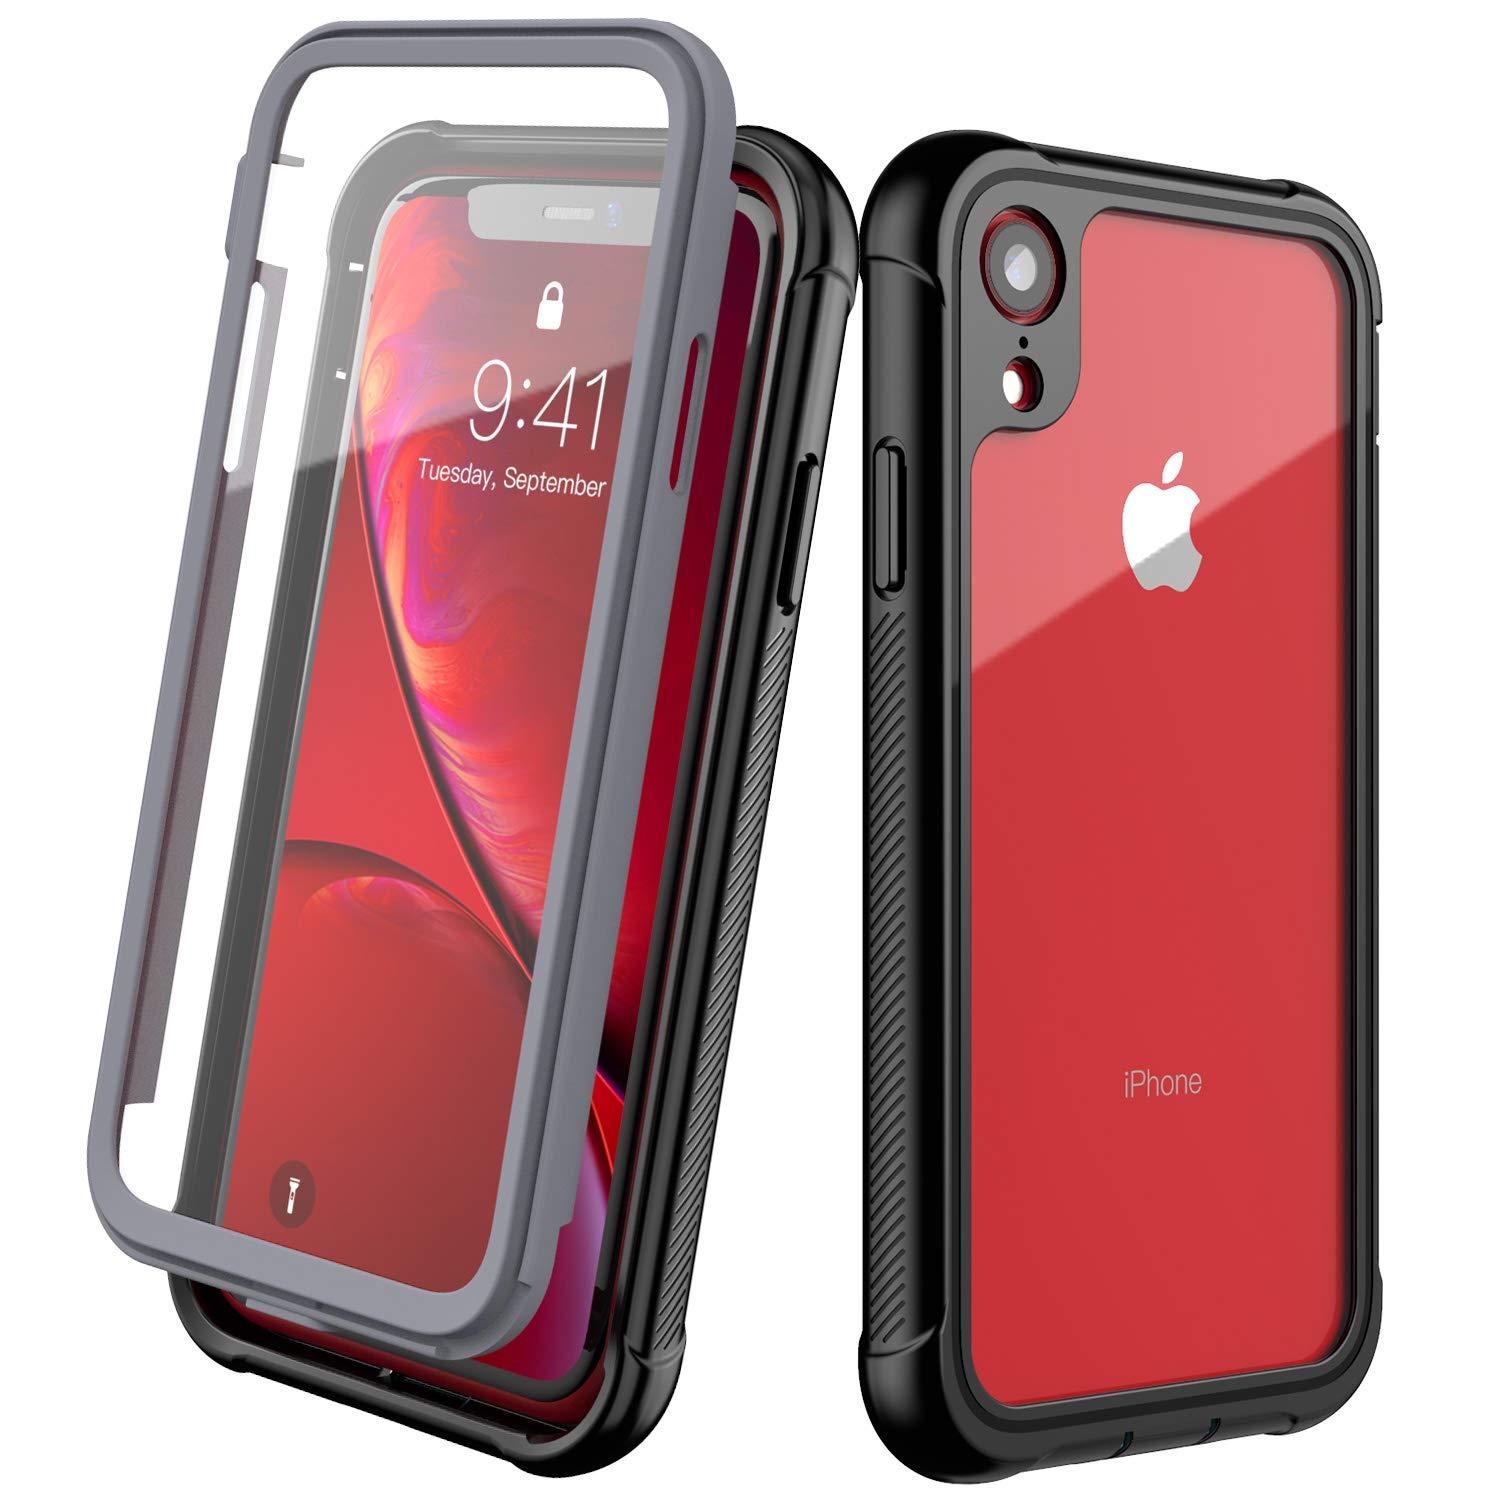 Clear Designed for iPhone XR Case,EONFINE Full-Body Heavy Duty Protection with Built-in Screen Protector Rugged Armor Cover Clear Shockproof Case for iPhone XR Case 6.1 Inch 2018 (Black) by Eonfine